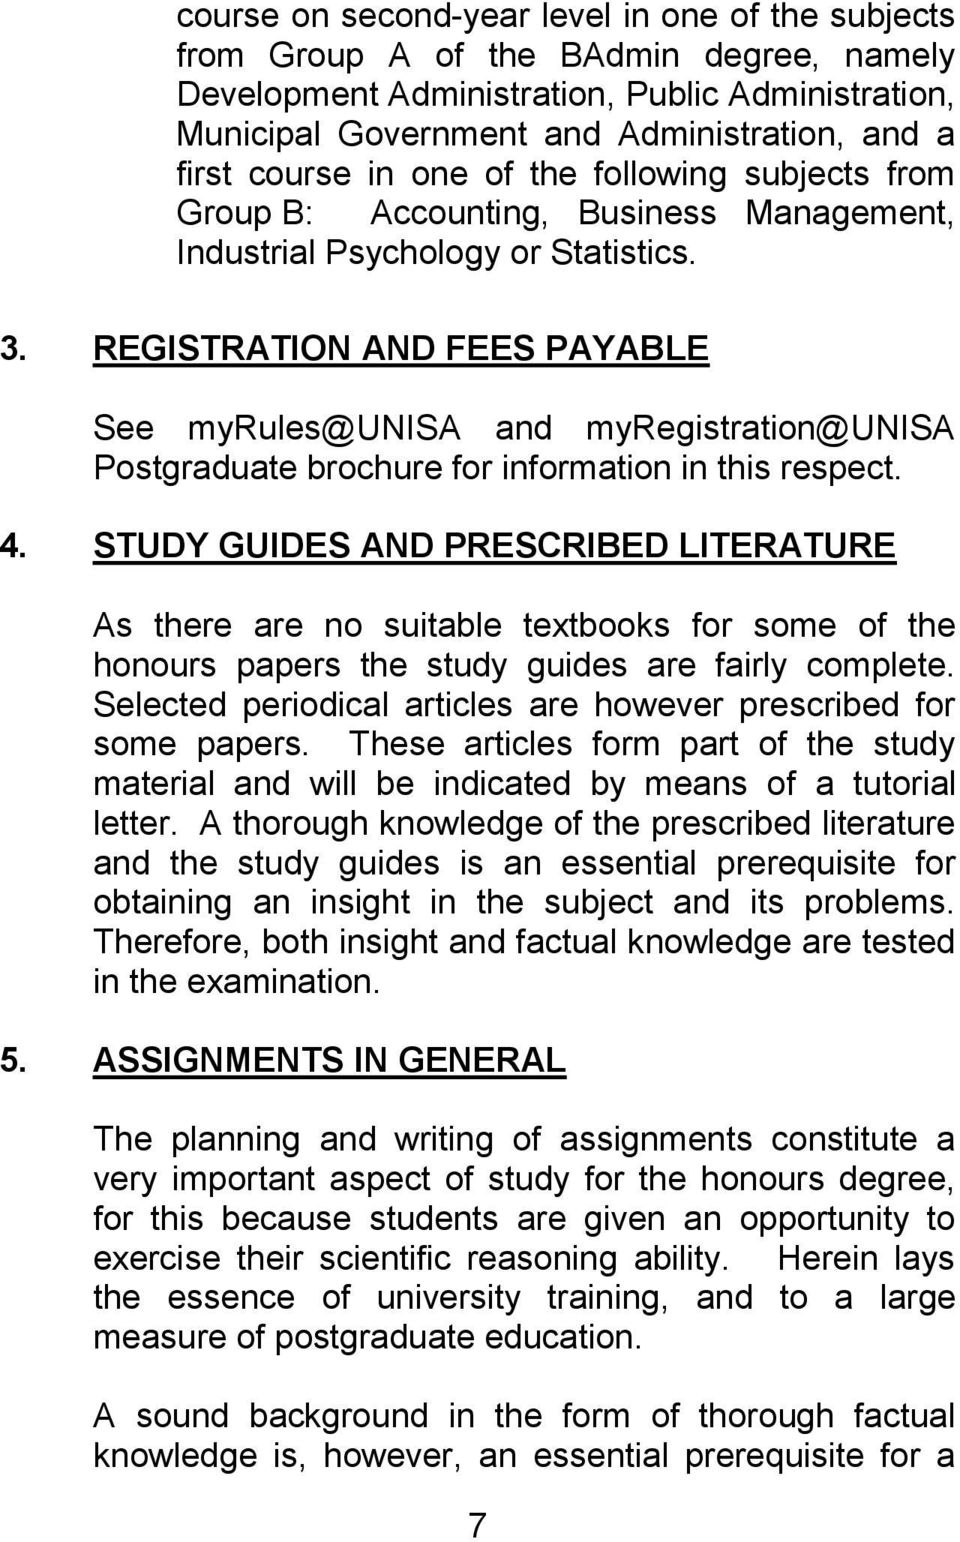 REGISTRATION AND FEES PAYABLE See myrules@unisa and myregistration@unisa Postgraduate brochure for information in this respect. 4.